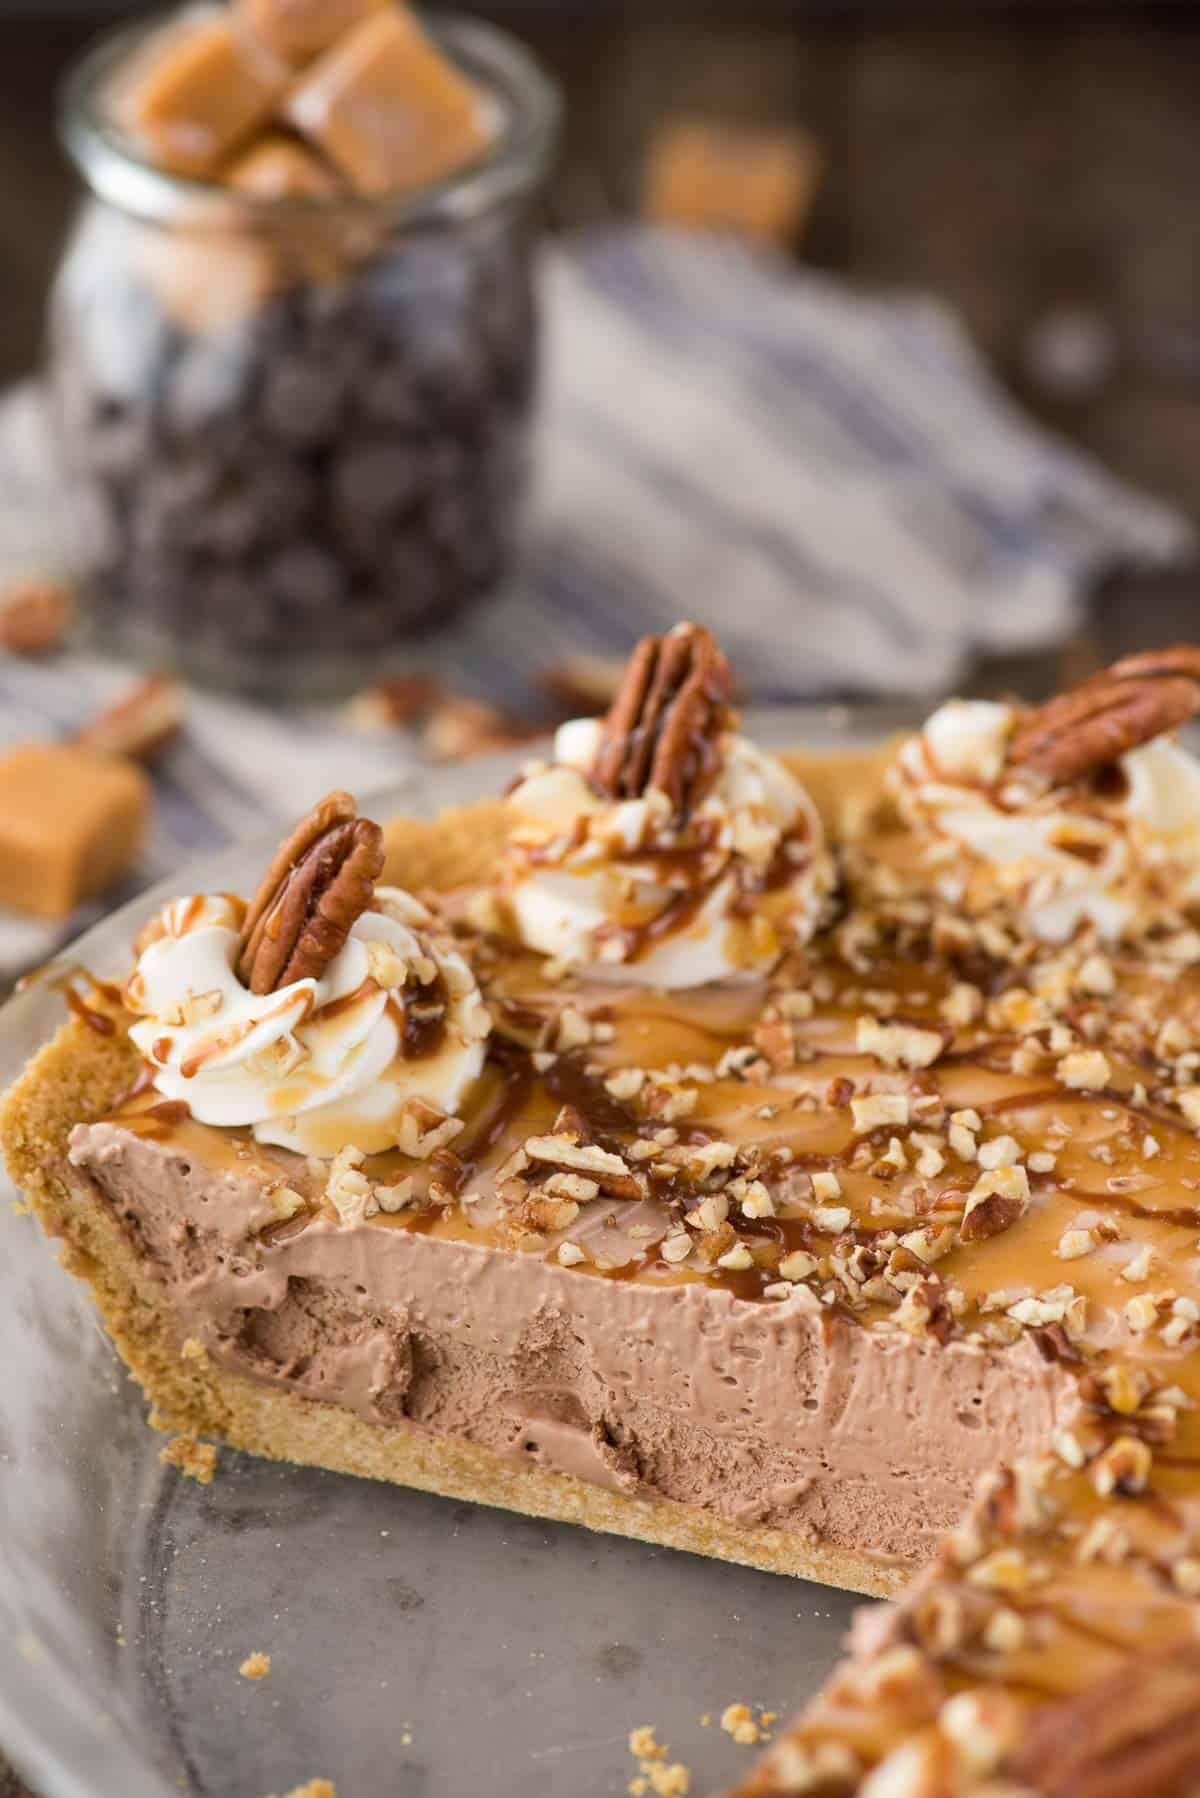 turtle pie with chocolate filling, chopped pecans and caramel drizzle in glass pie pan